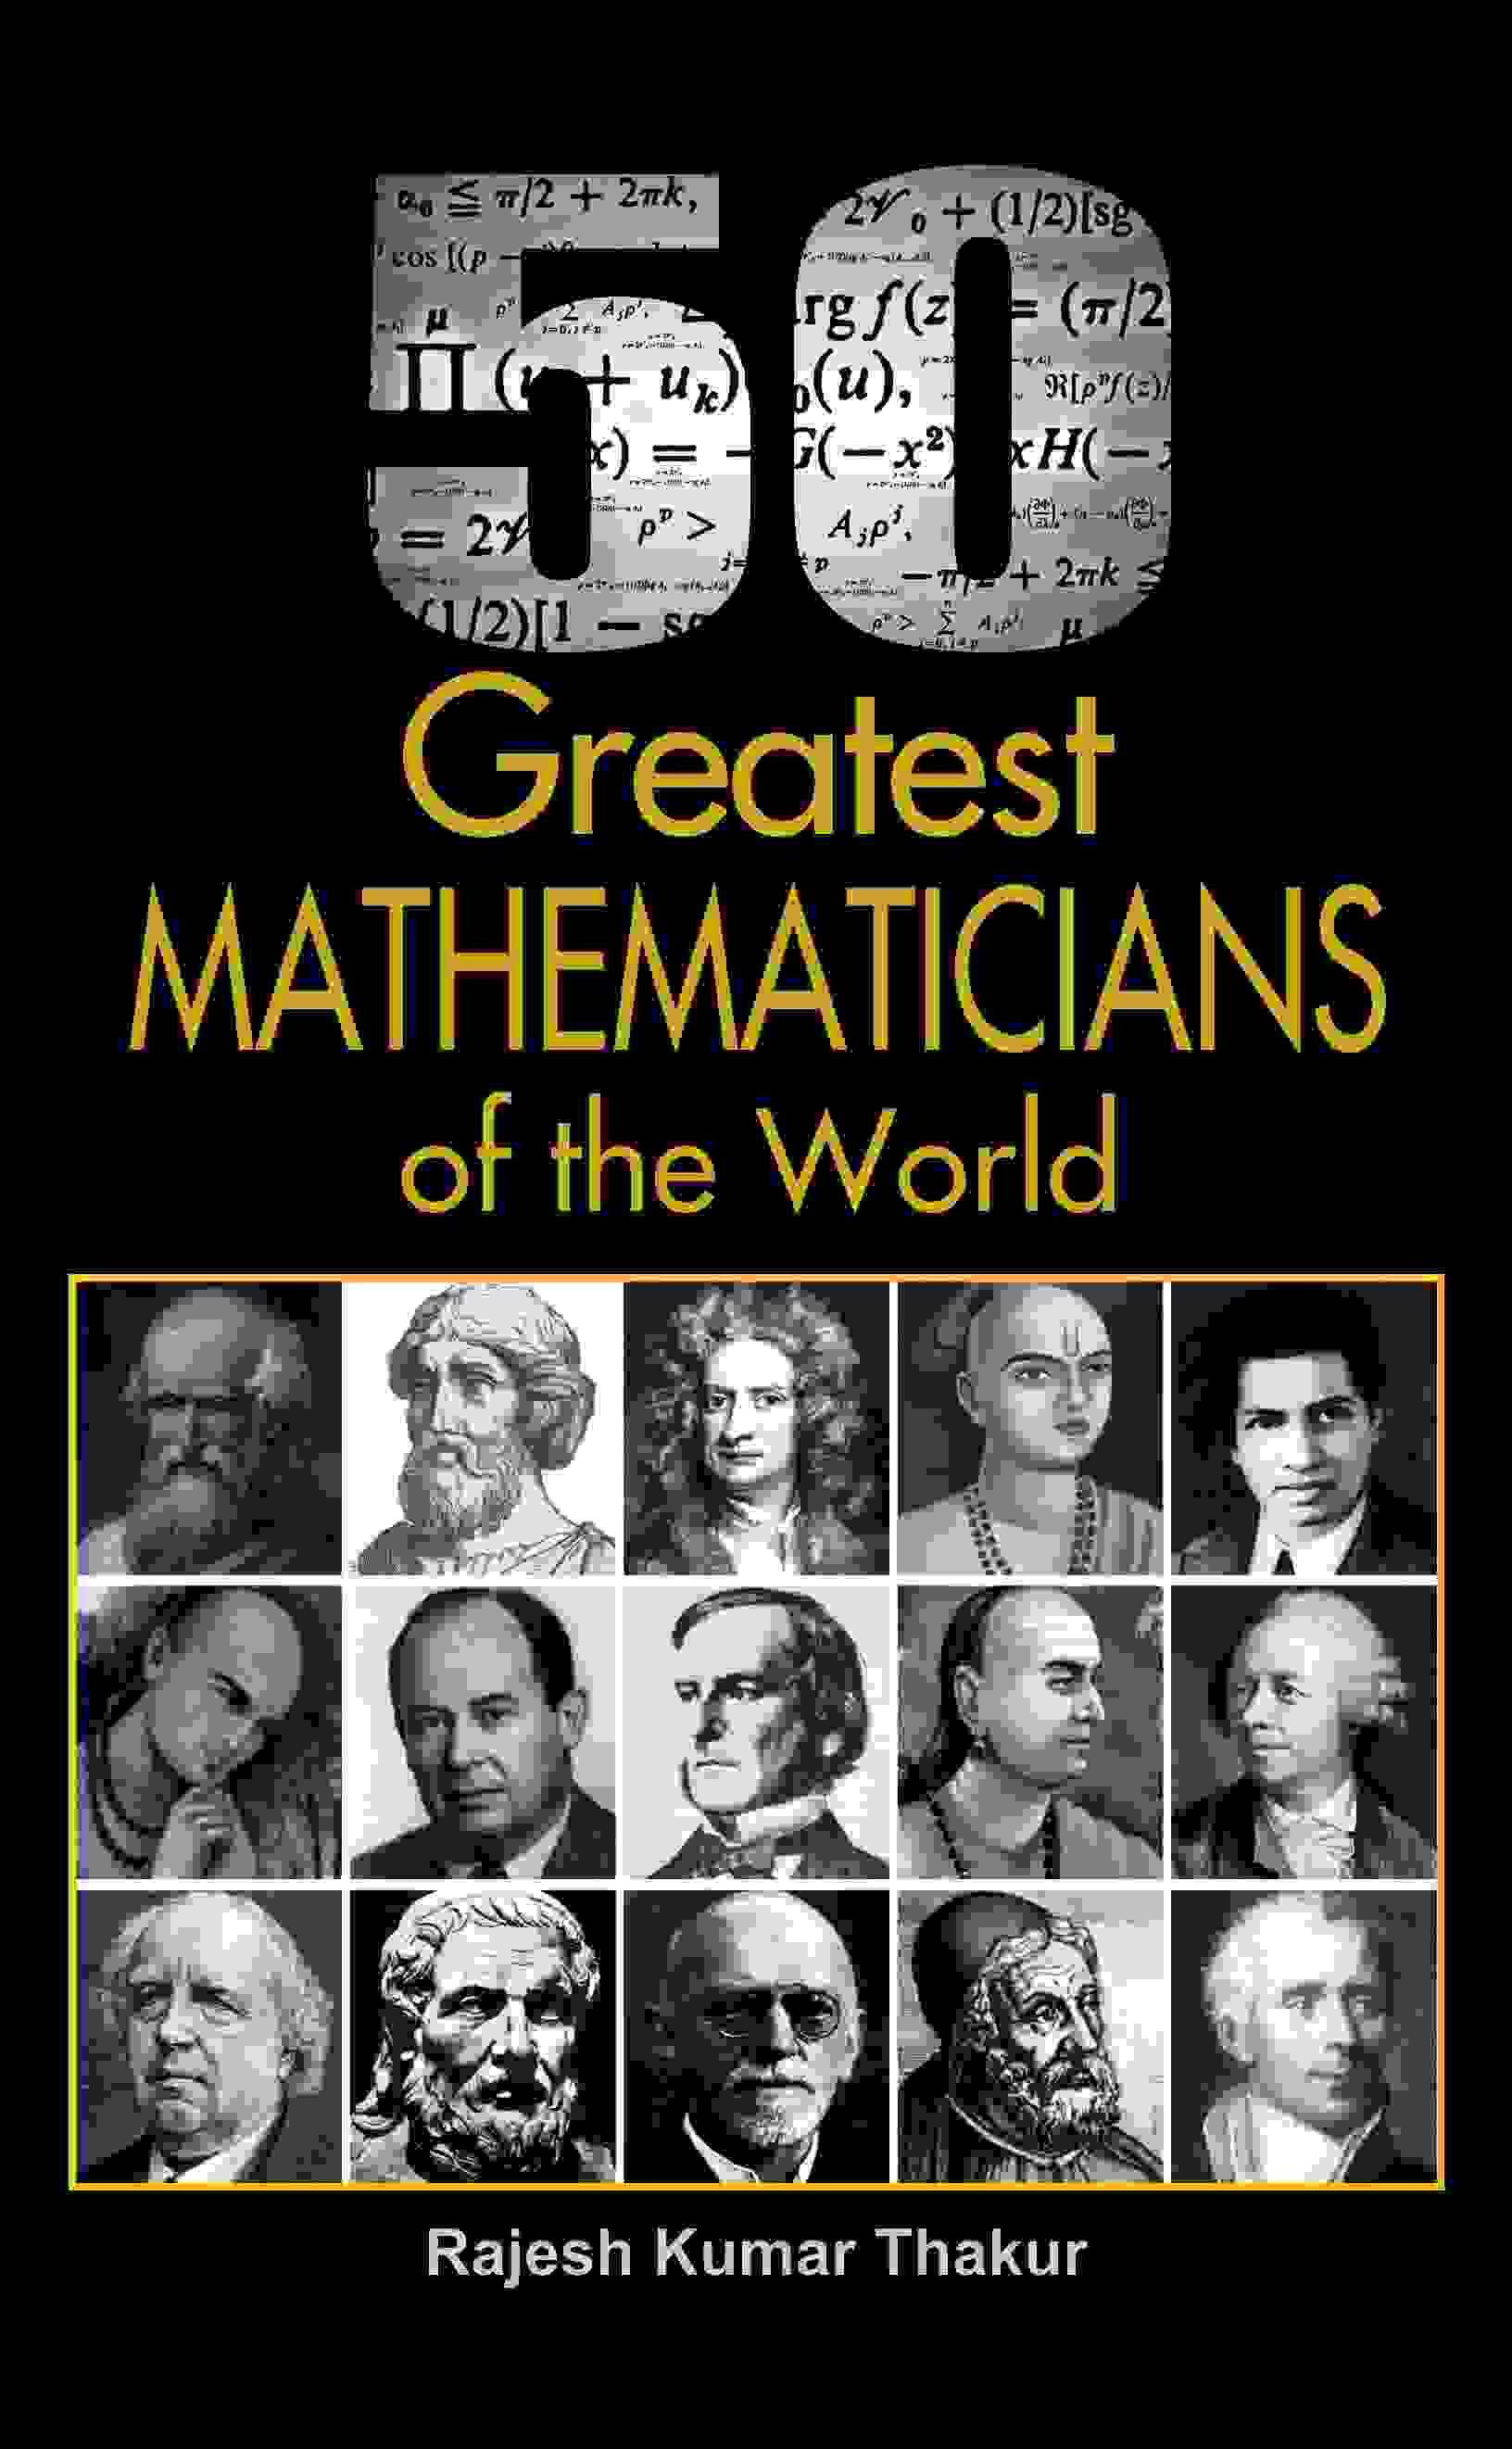 50 Greatest Mathematicians of the World